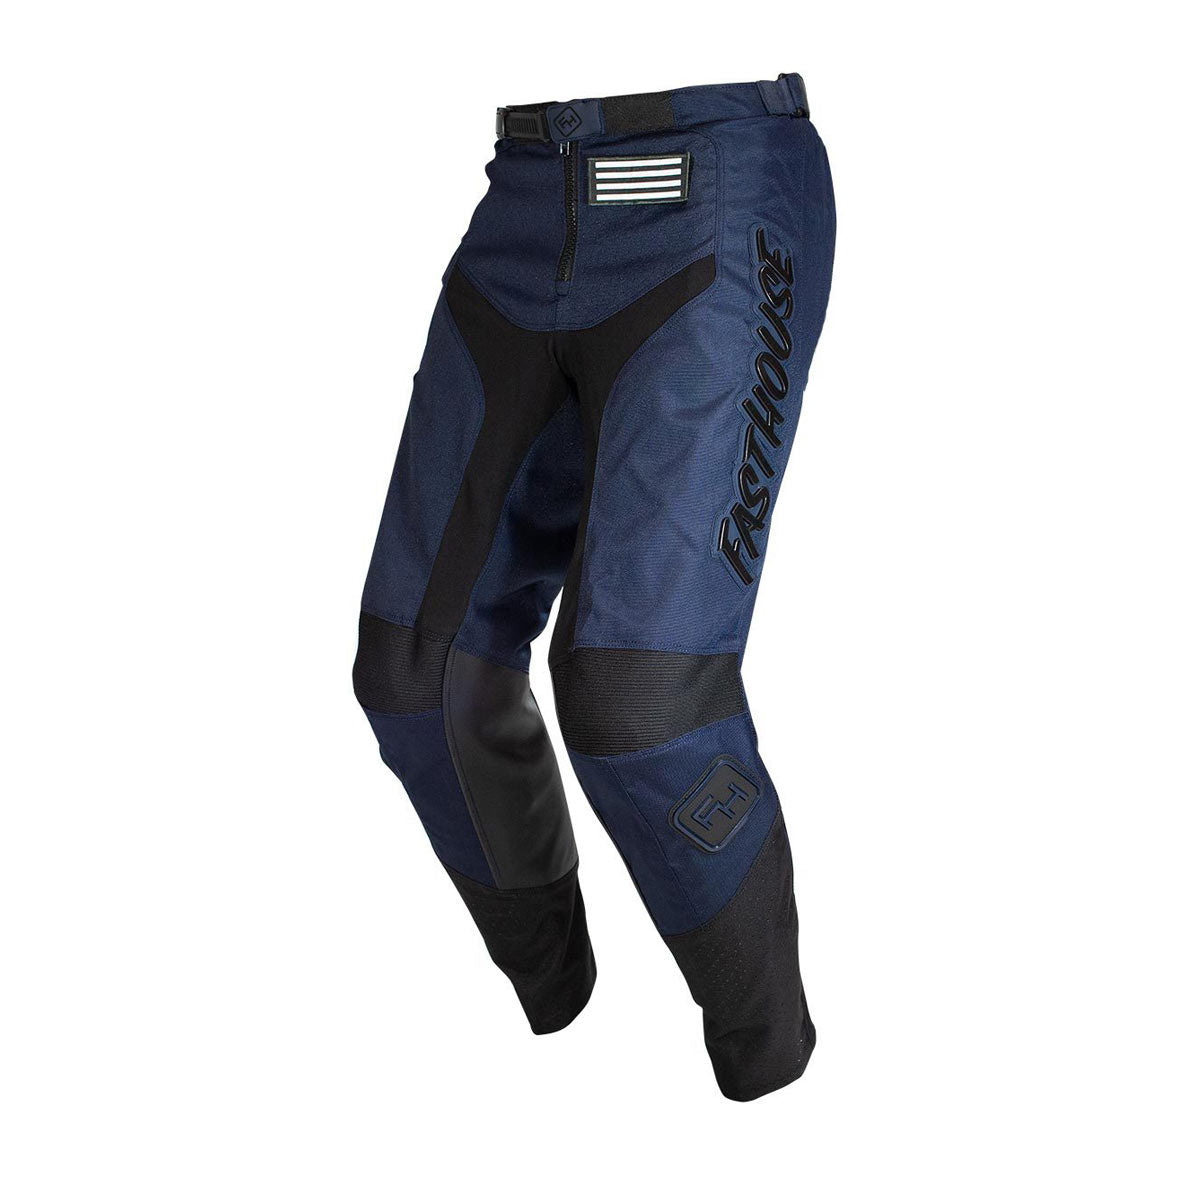 Grindhouse Youth Pant - Navy/Black